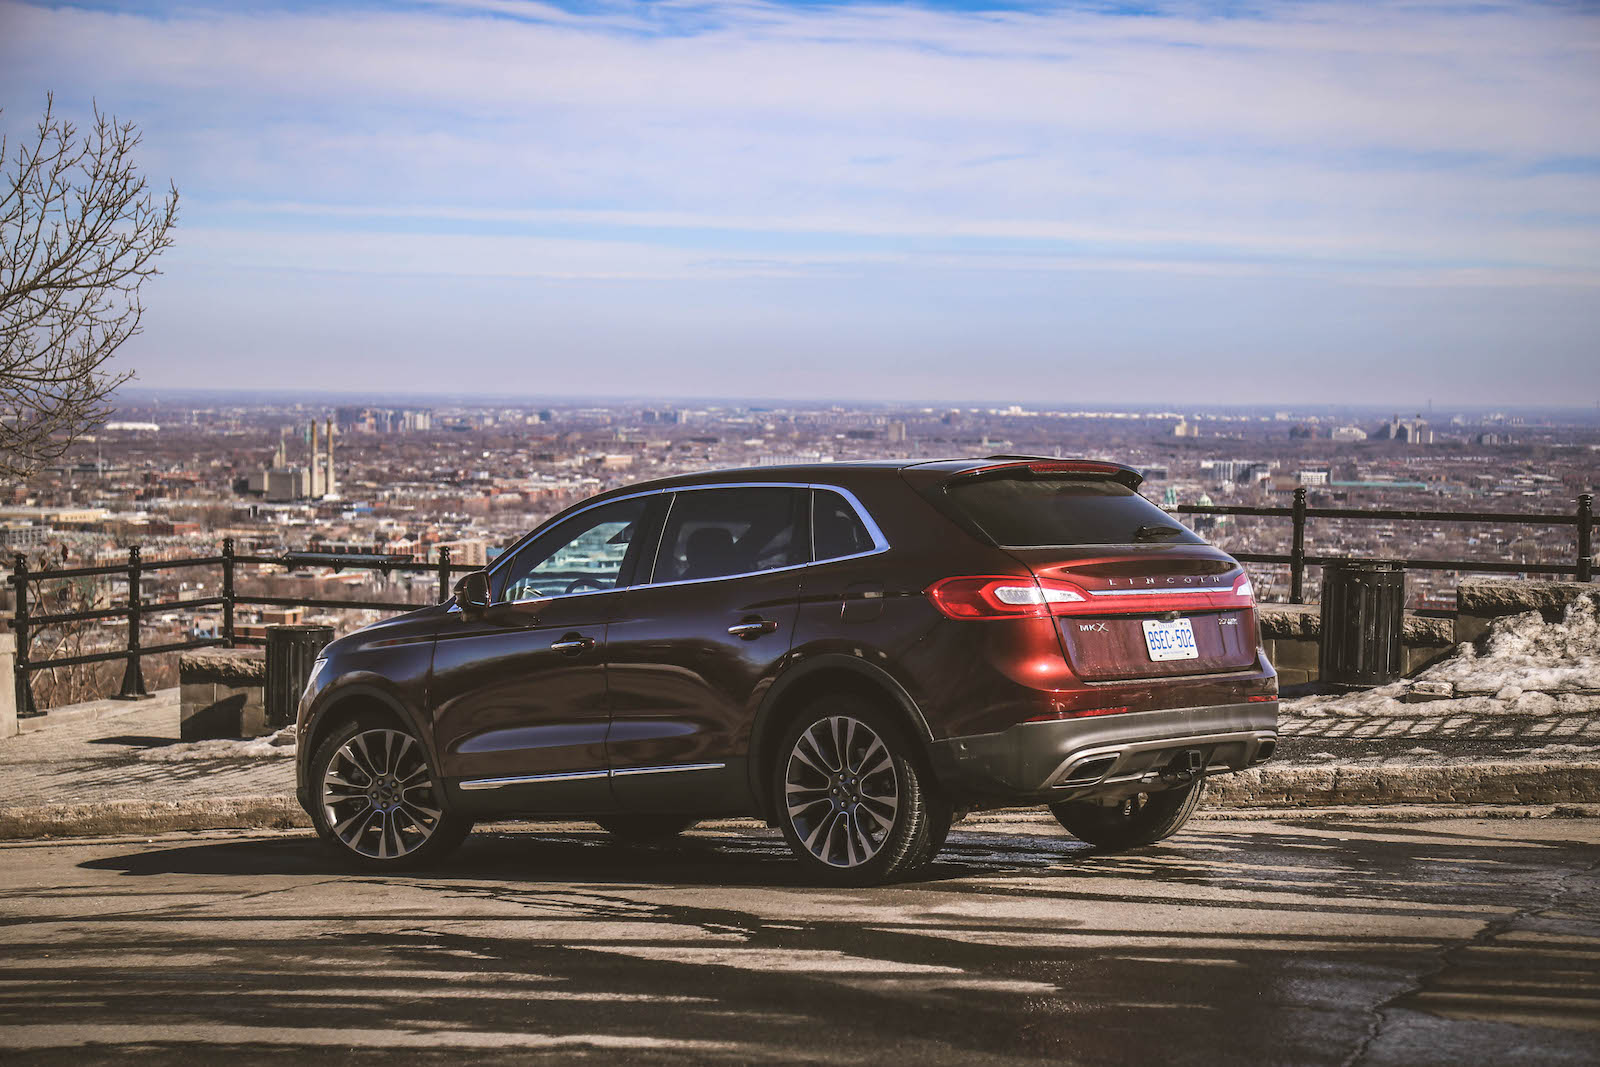 Road trip to montreal in a 2016 lincoln mkx canadian Lincoln motor company canada